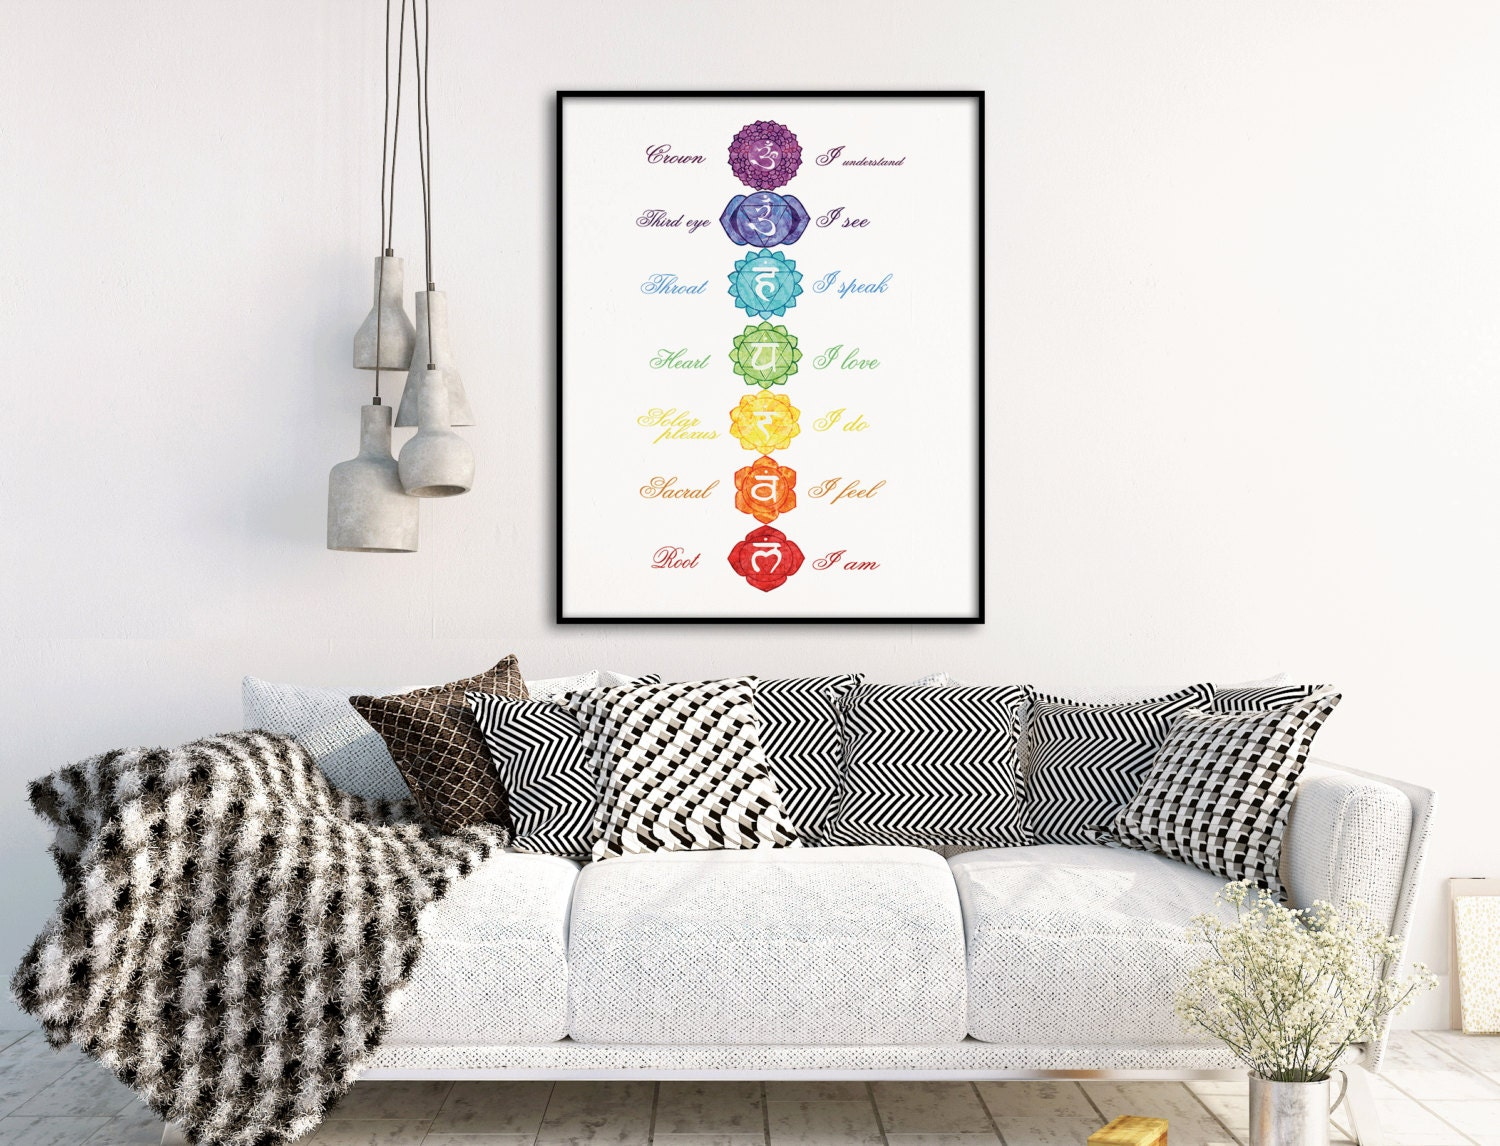 Meditation Decor Unique Chakra Meditation Wall Art Chakra Print Yoga Studio Decor Design Inspiration